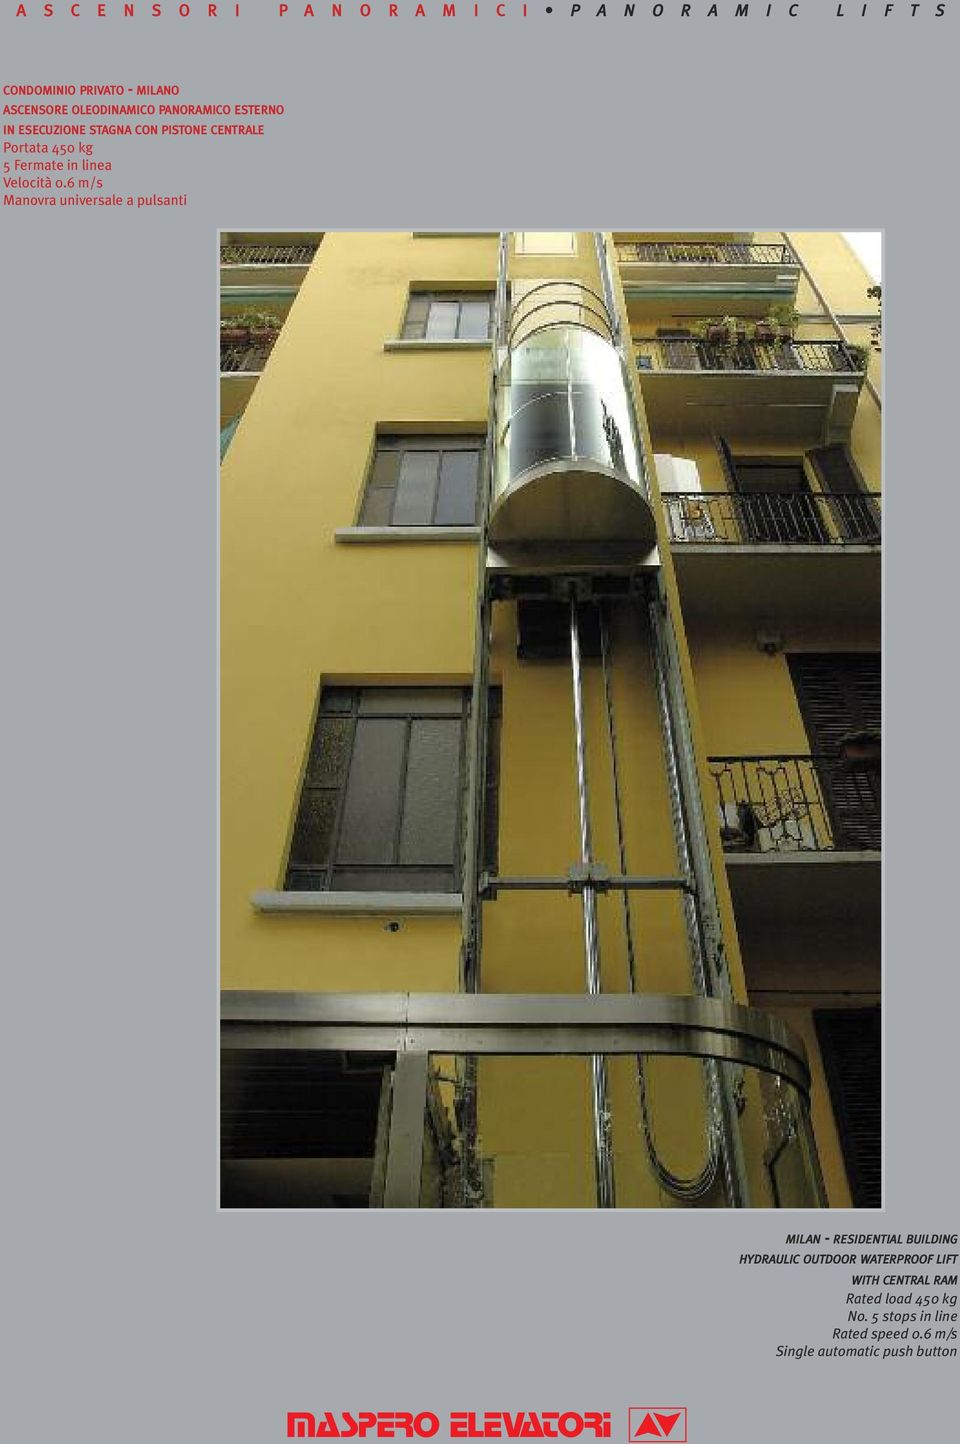 6 m/s Manovra universale a pulsanti MILAN - RESIDENTIAL BUILDING HYDRAULIC OUTDOOR